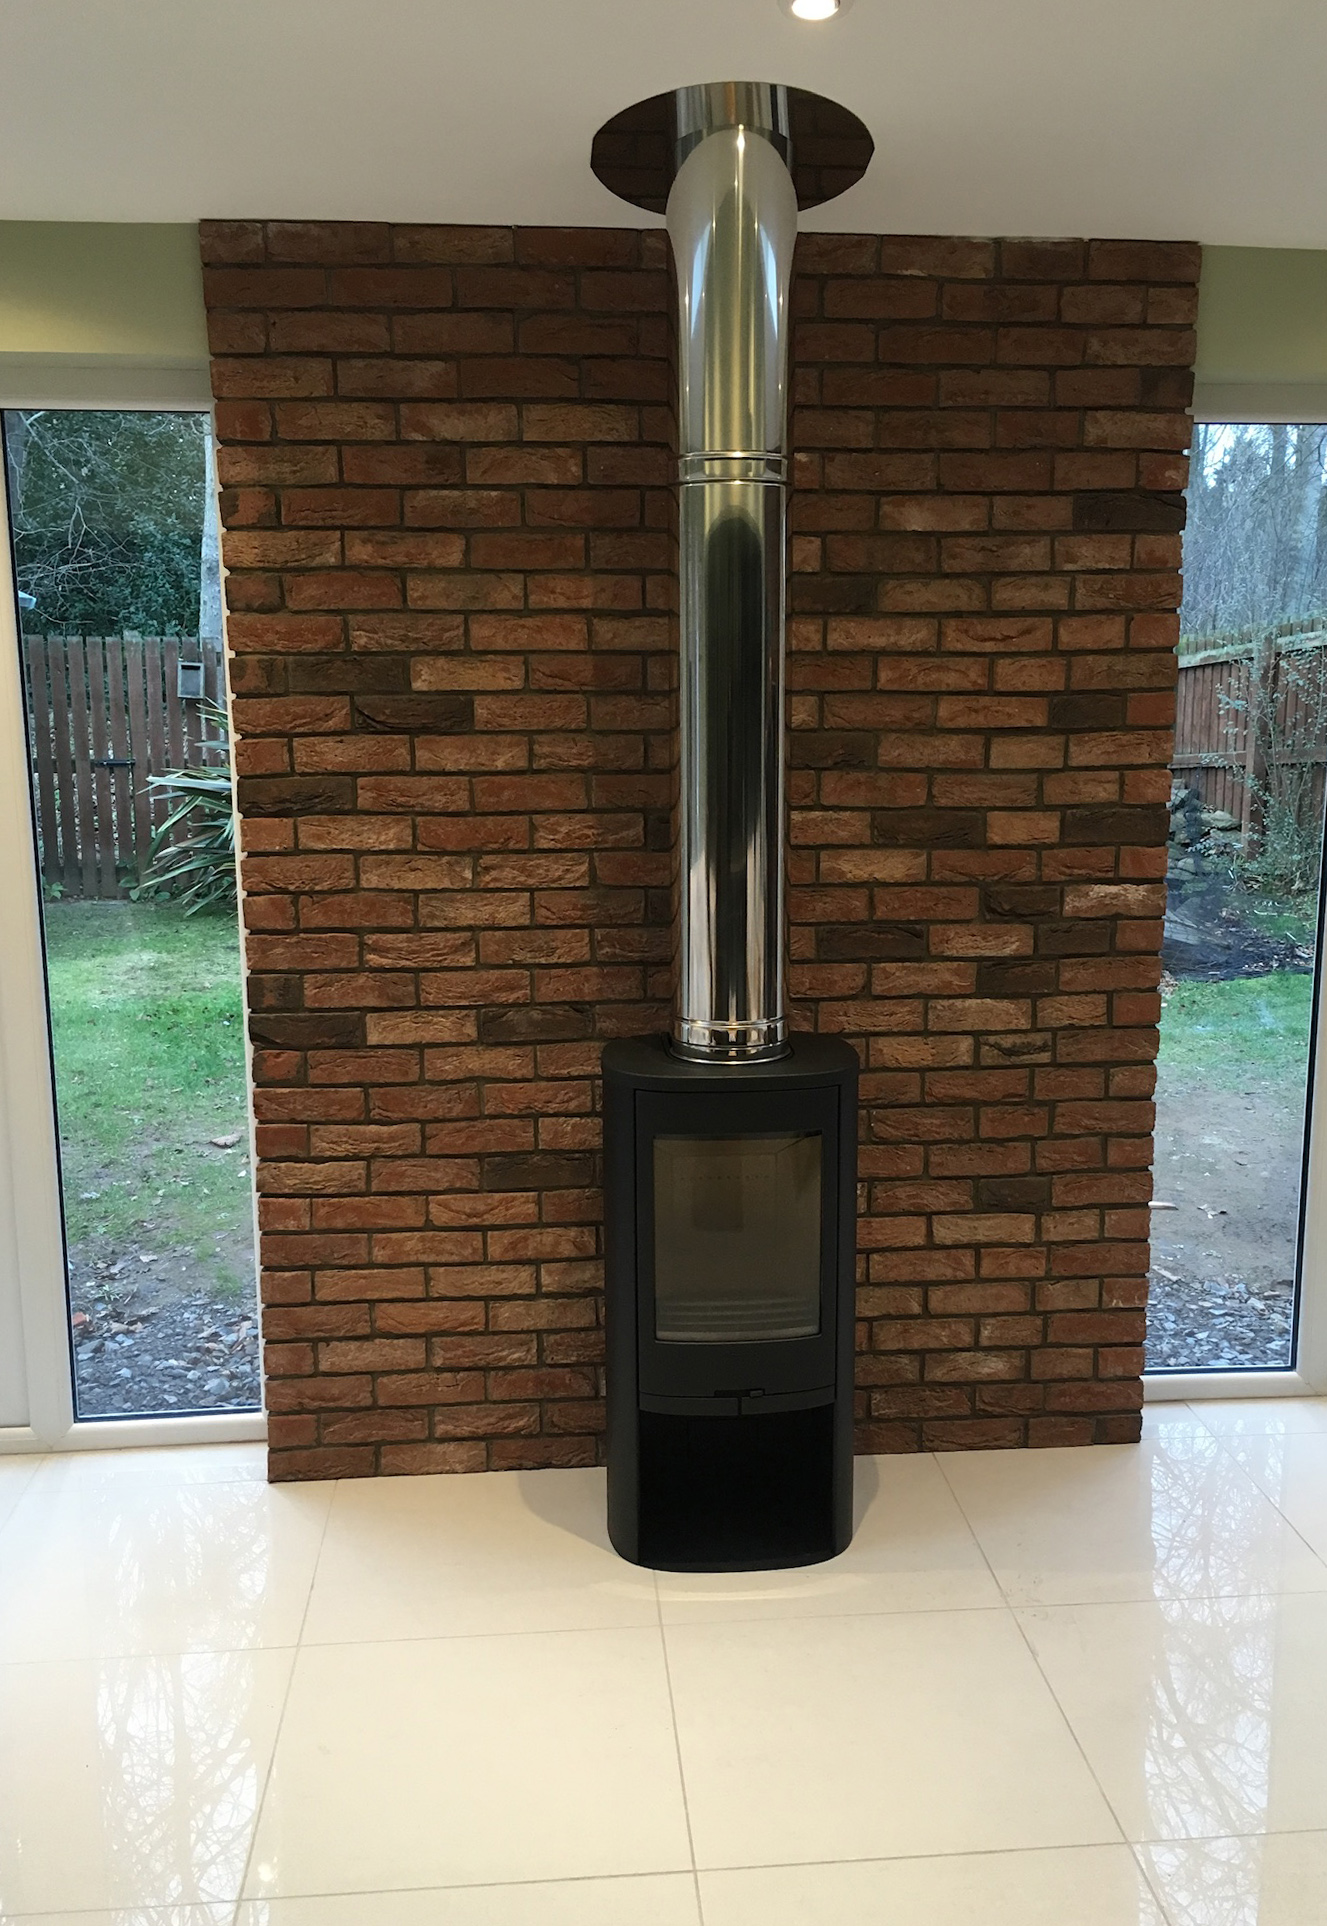 Freestanding stove with exposed brick feature wall